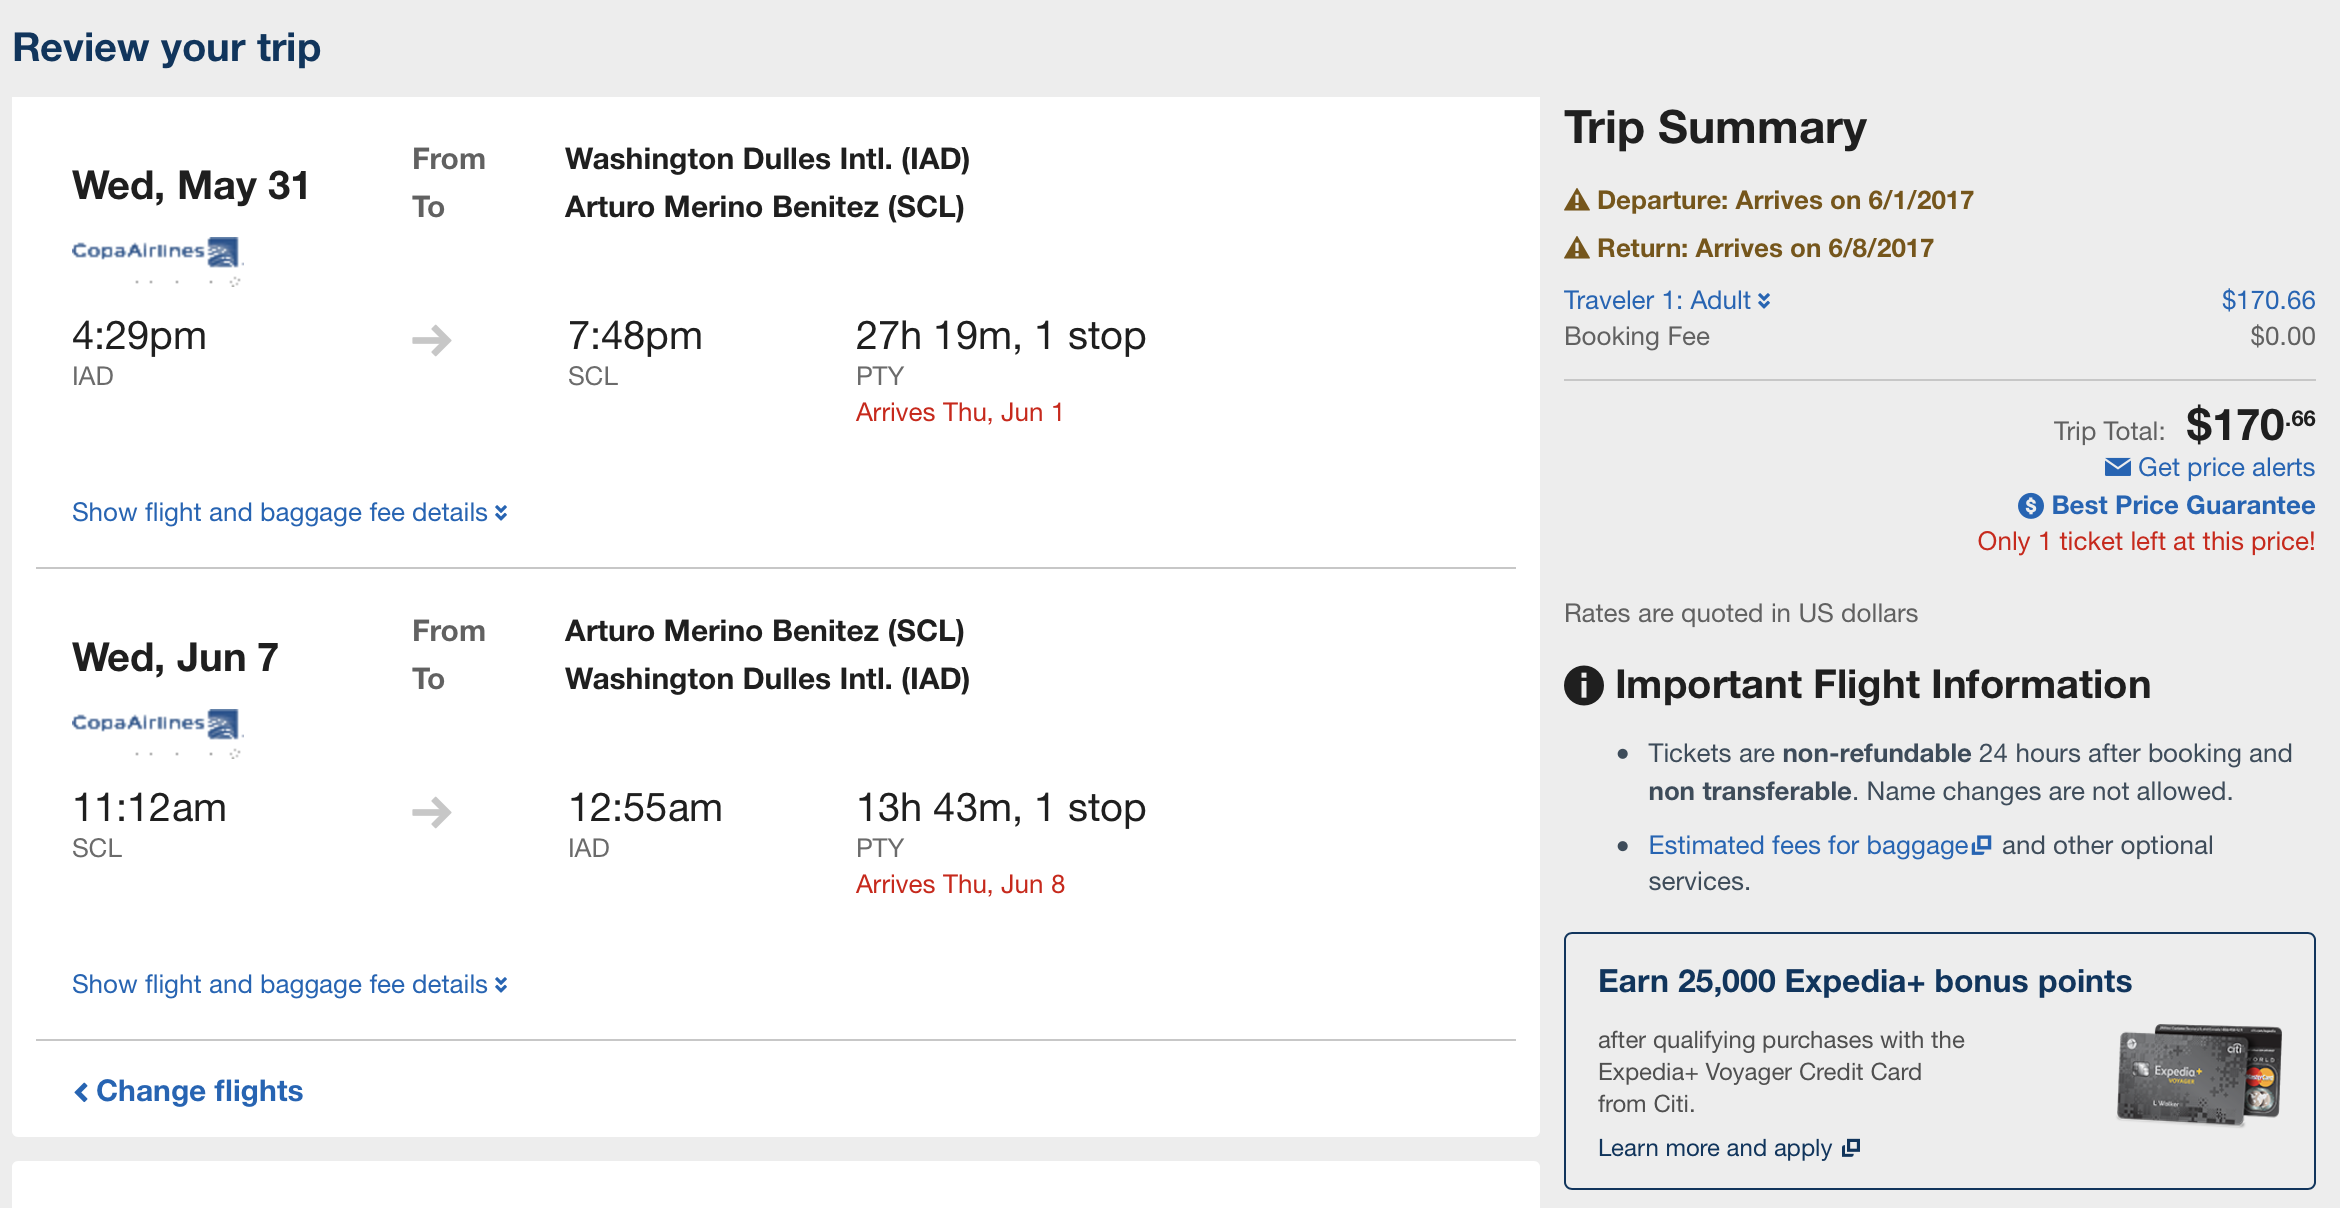 Fly from Washington Dulles (IAD) to Satiago (SCL) for $170 round-trip!